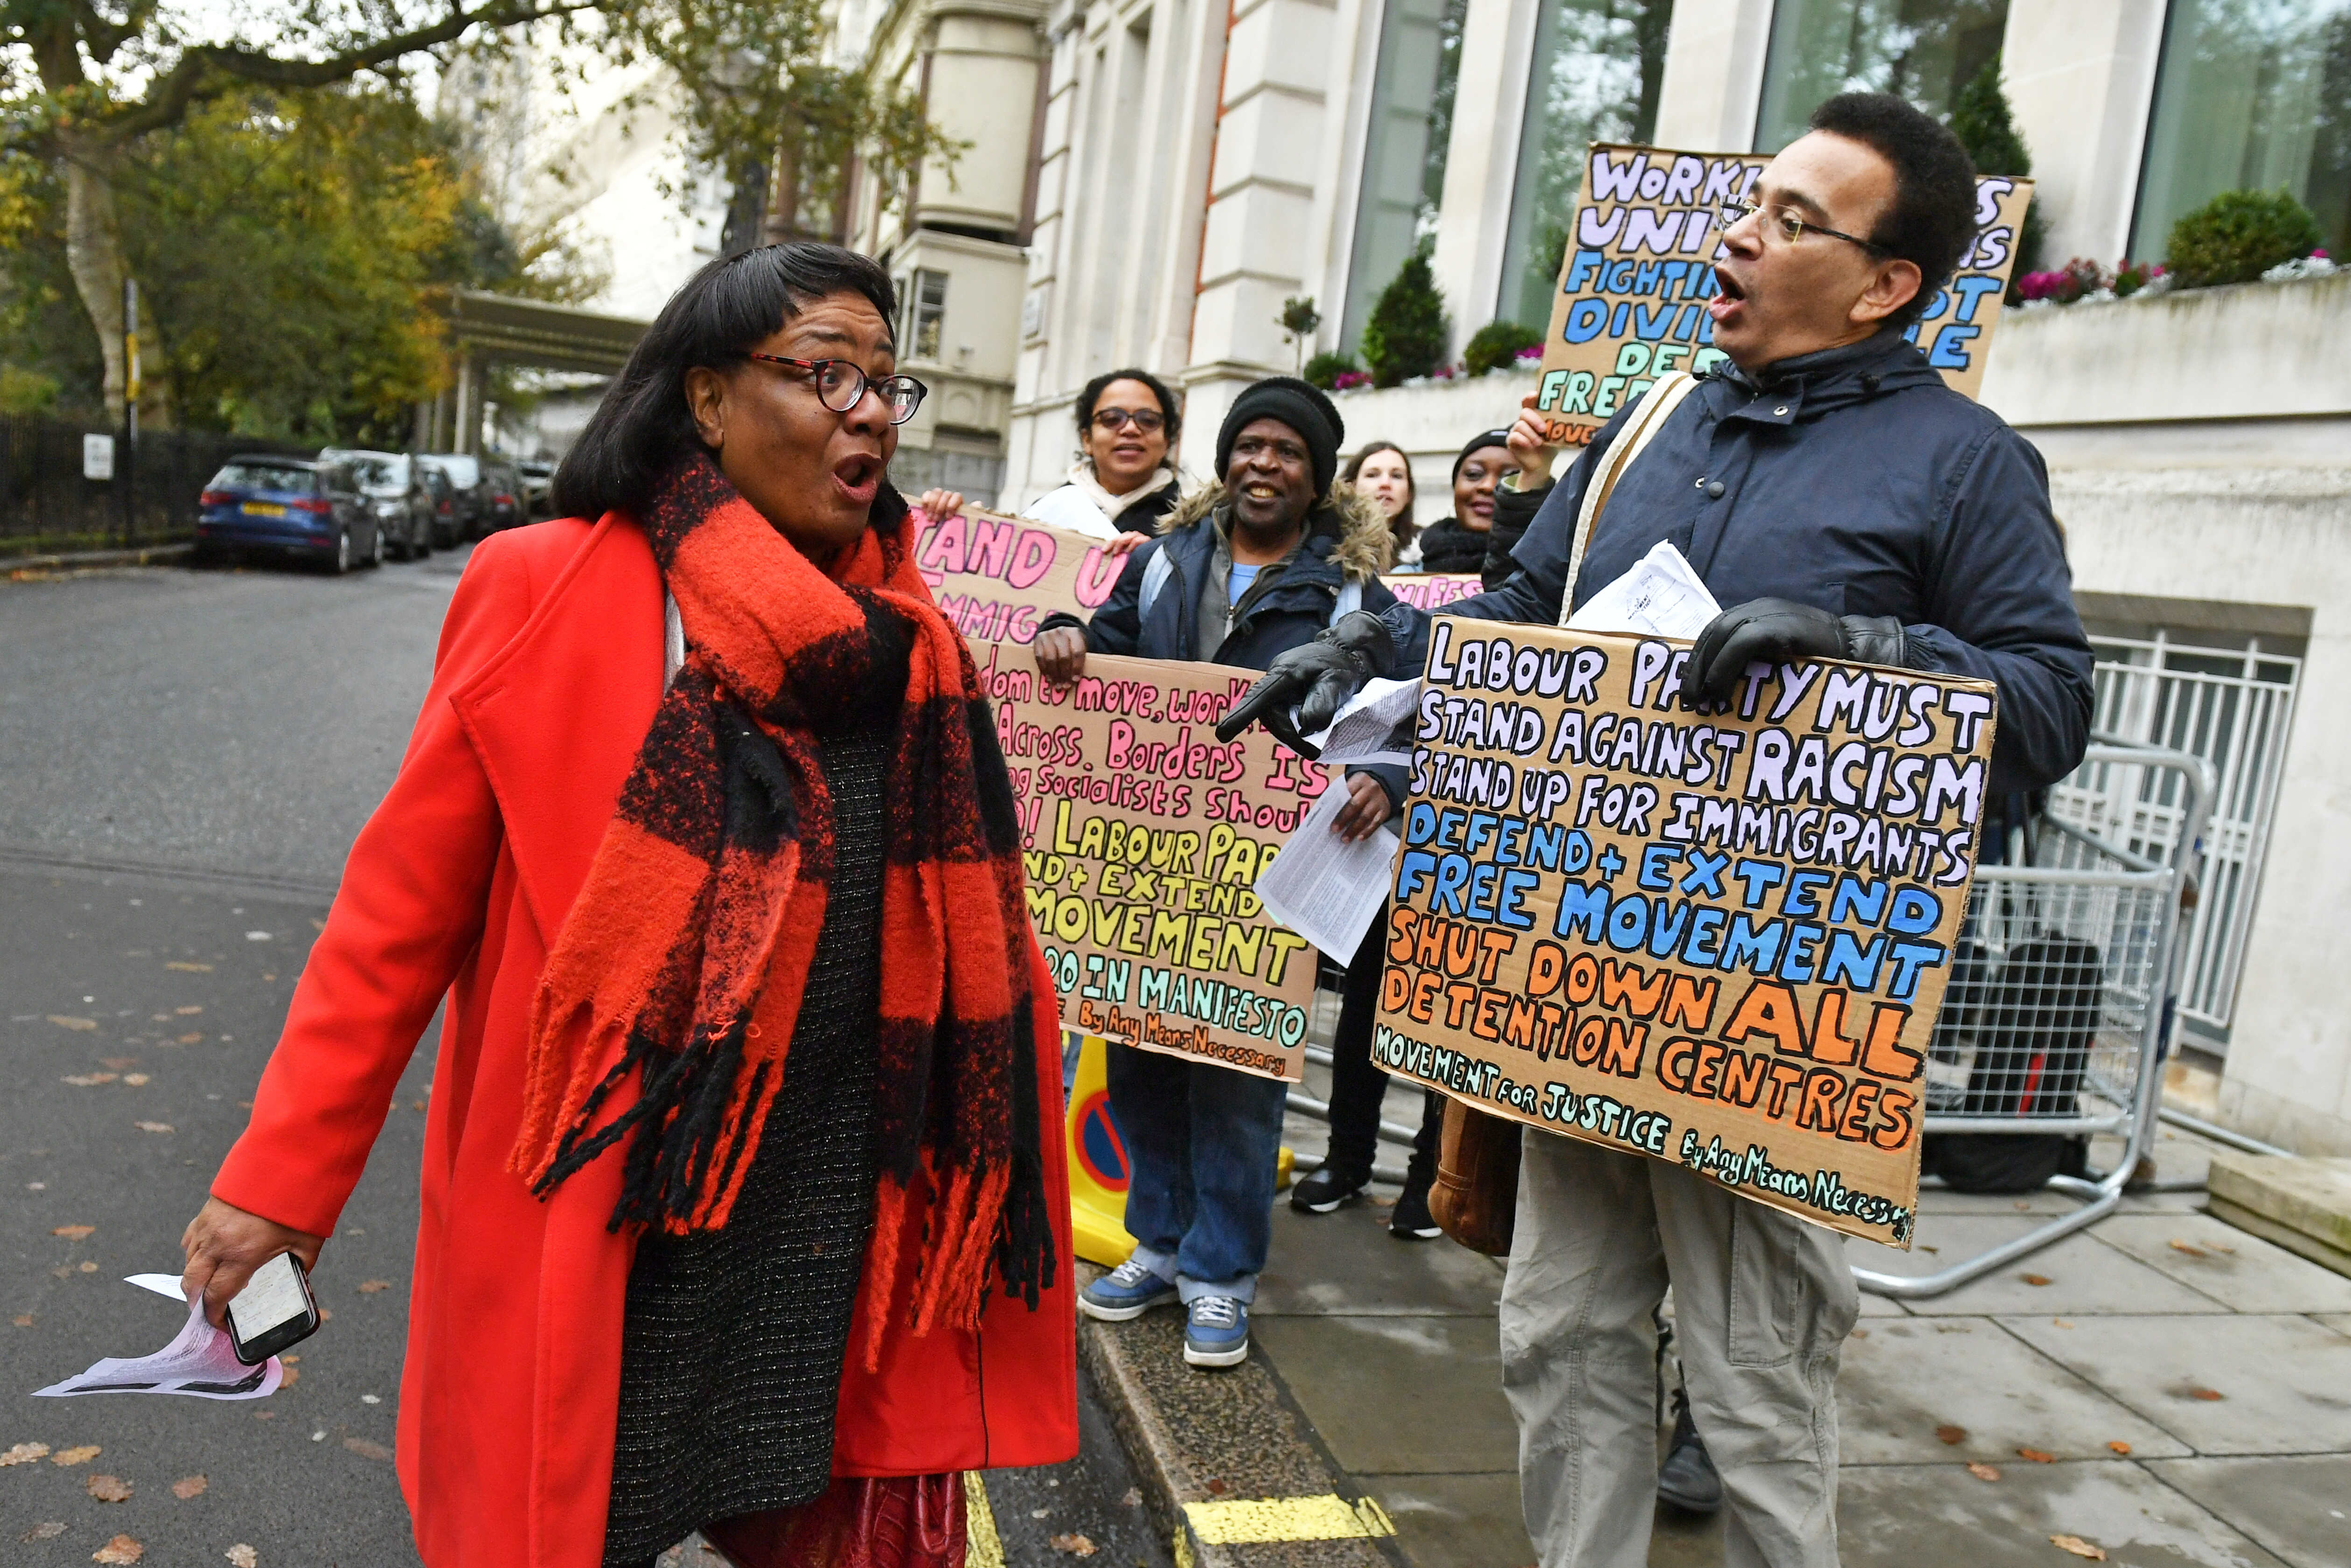 Shadow home secretary Diane Abbott is greeted by pro-immigration protesters as she arrives for a Labour clause V meeting on the manifesto at Savoy Place in London.